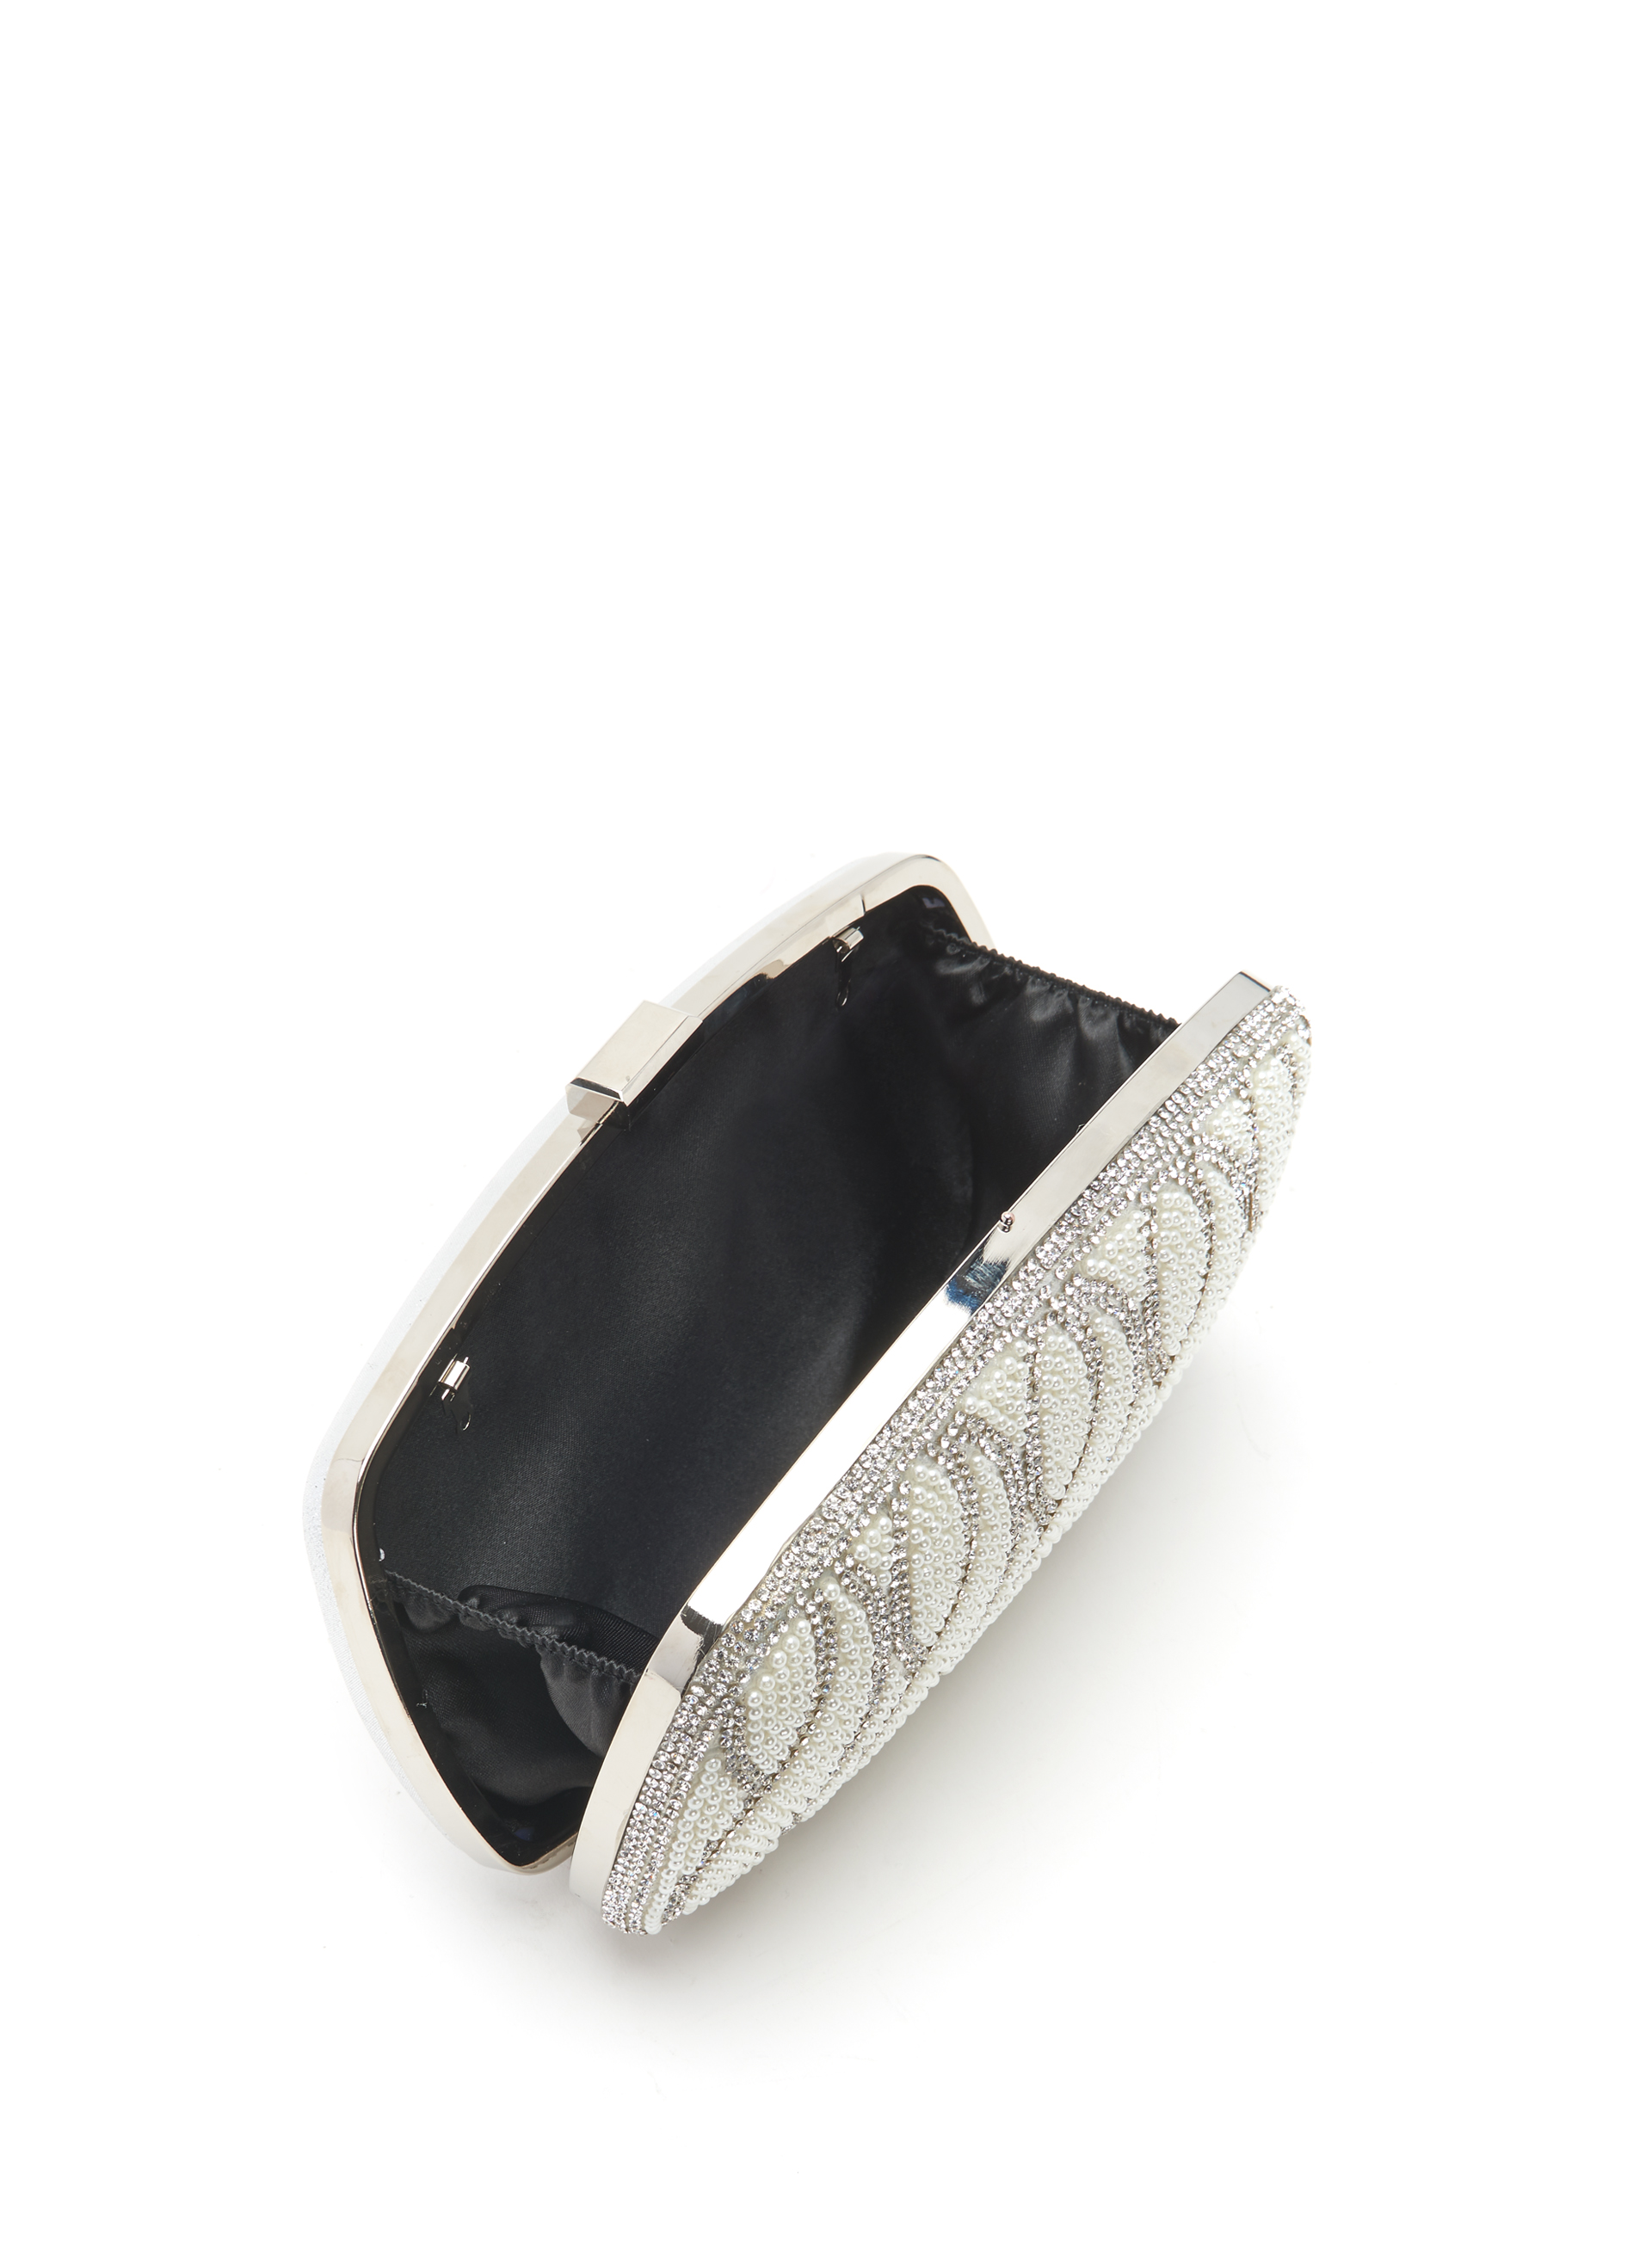 Pearl & Crystal Clutch, Off White, hi-res